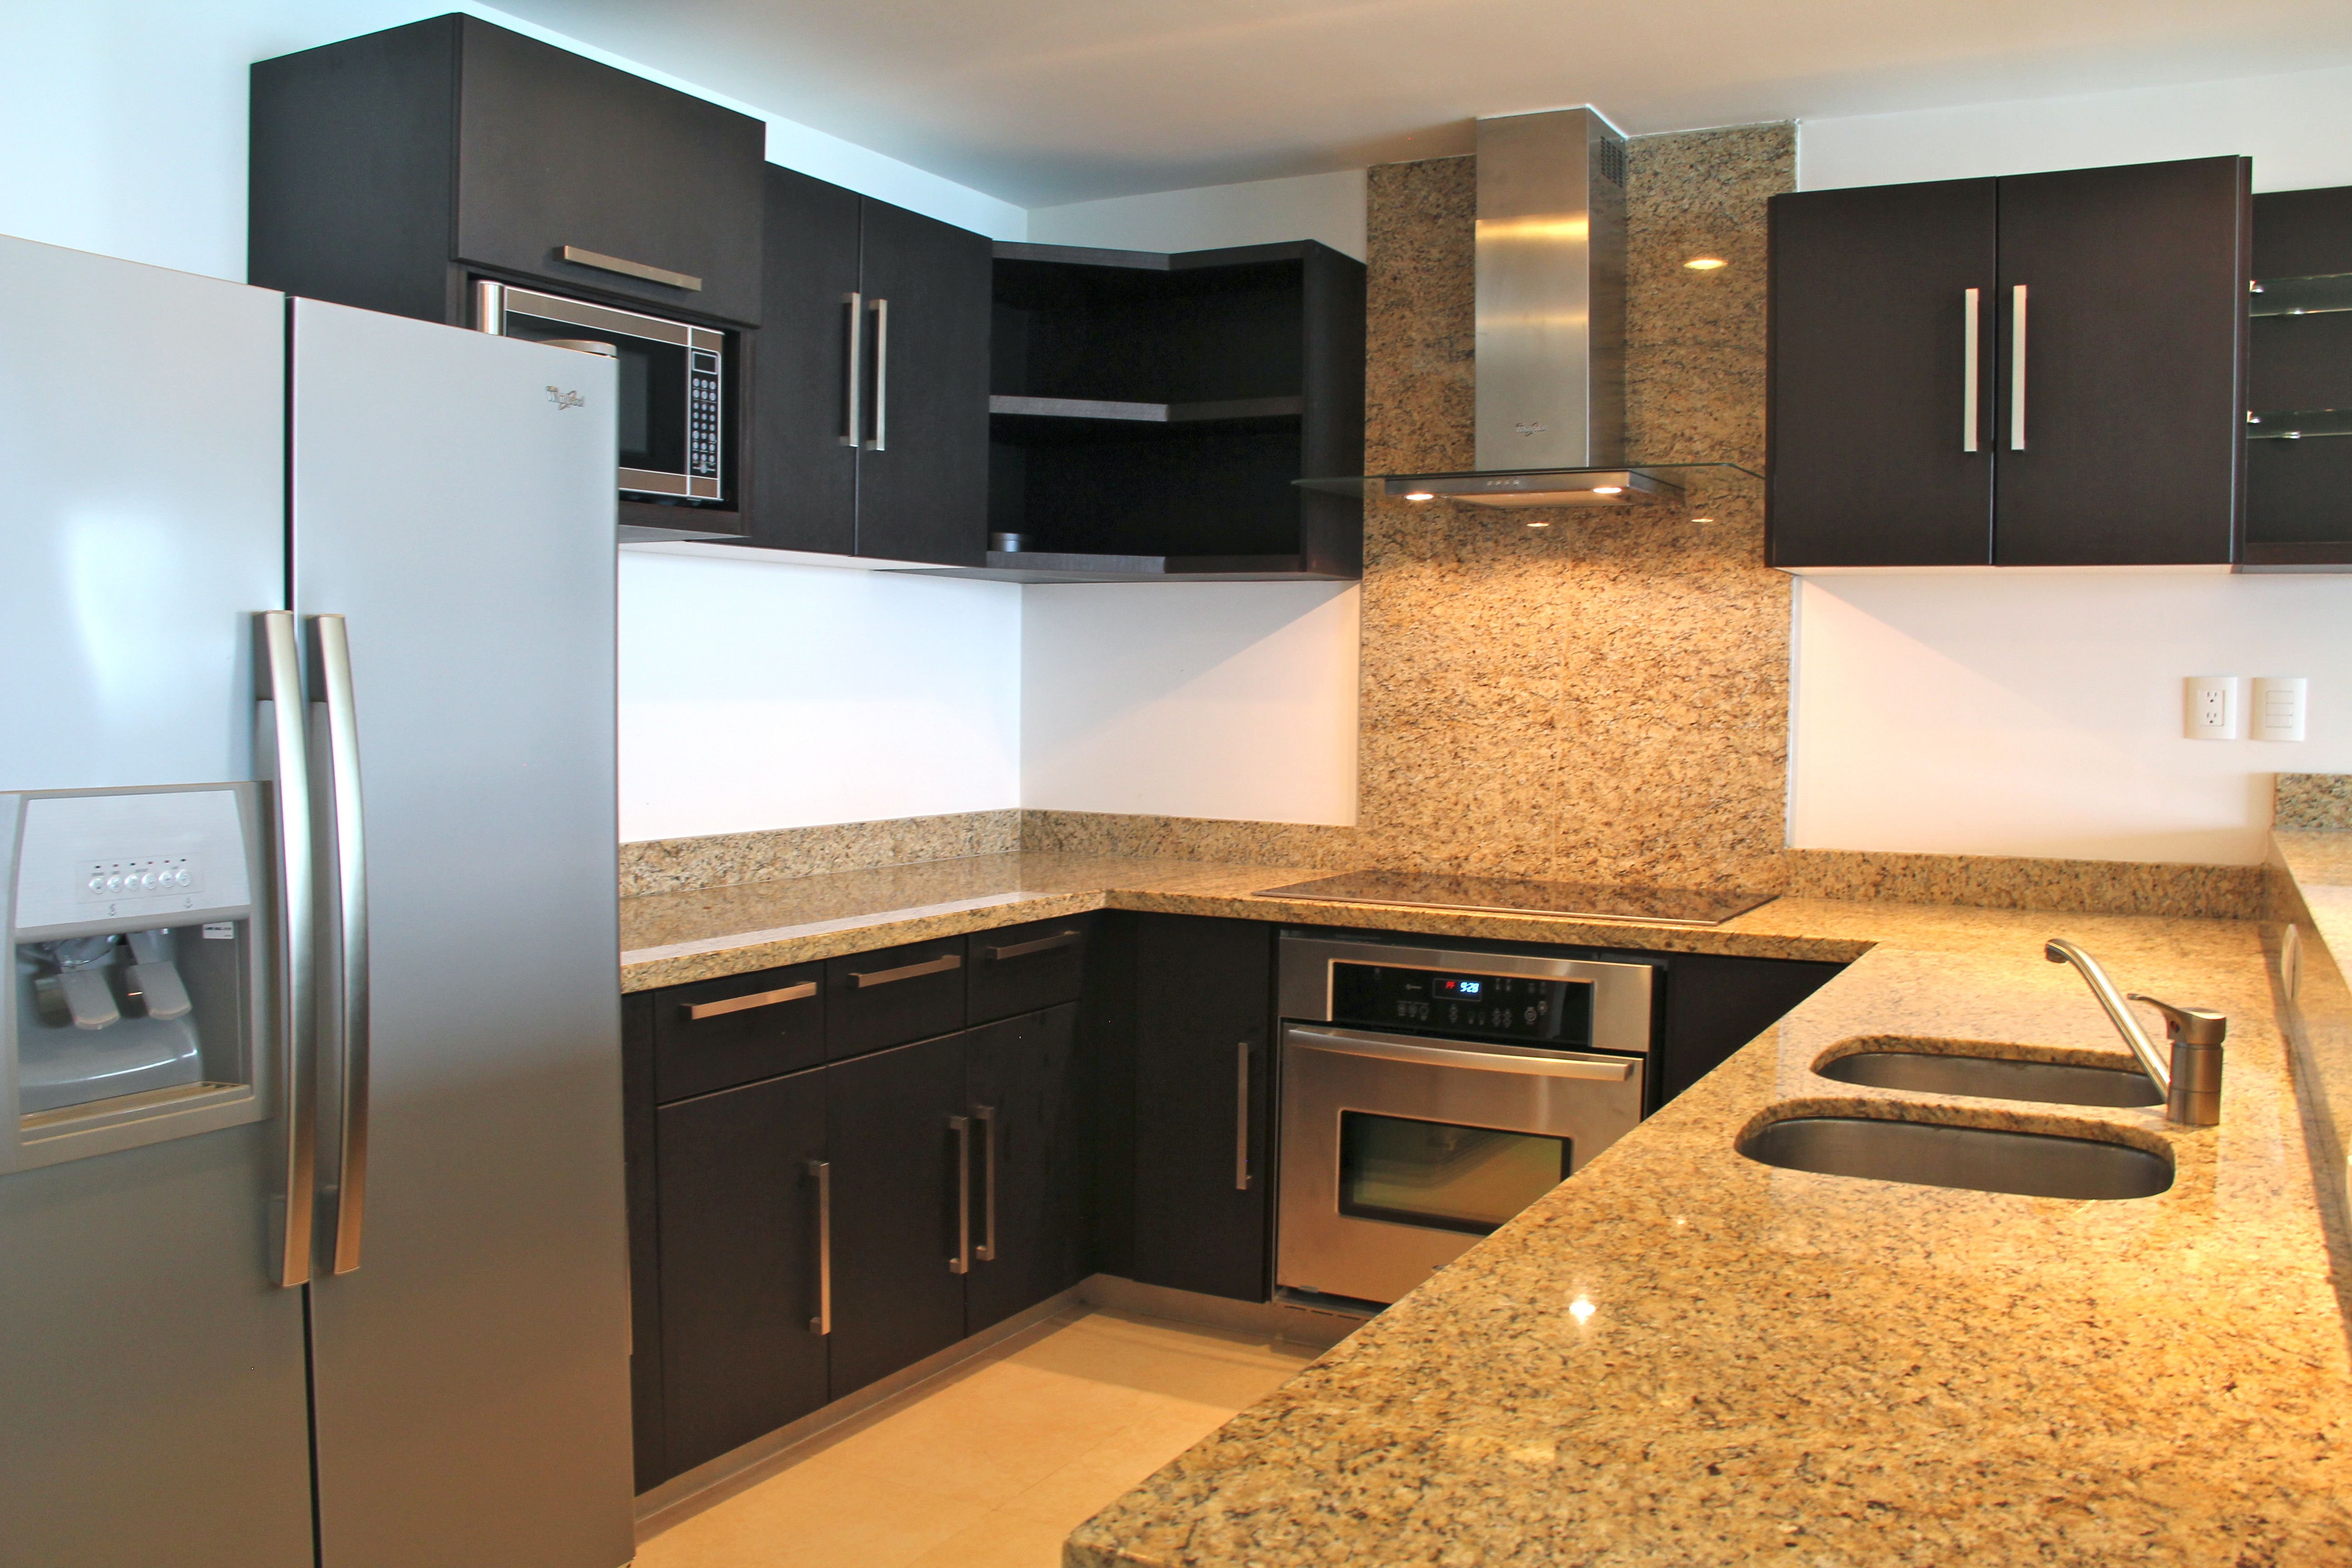 Gourmet kitchen with granite counter